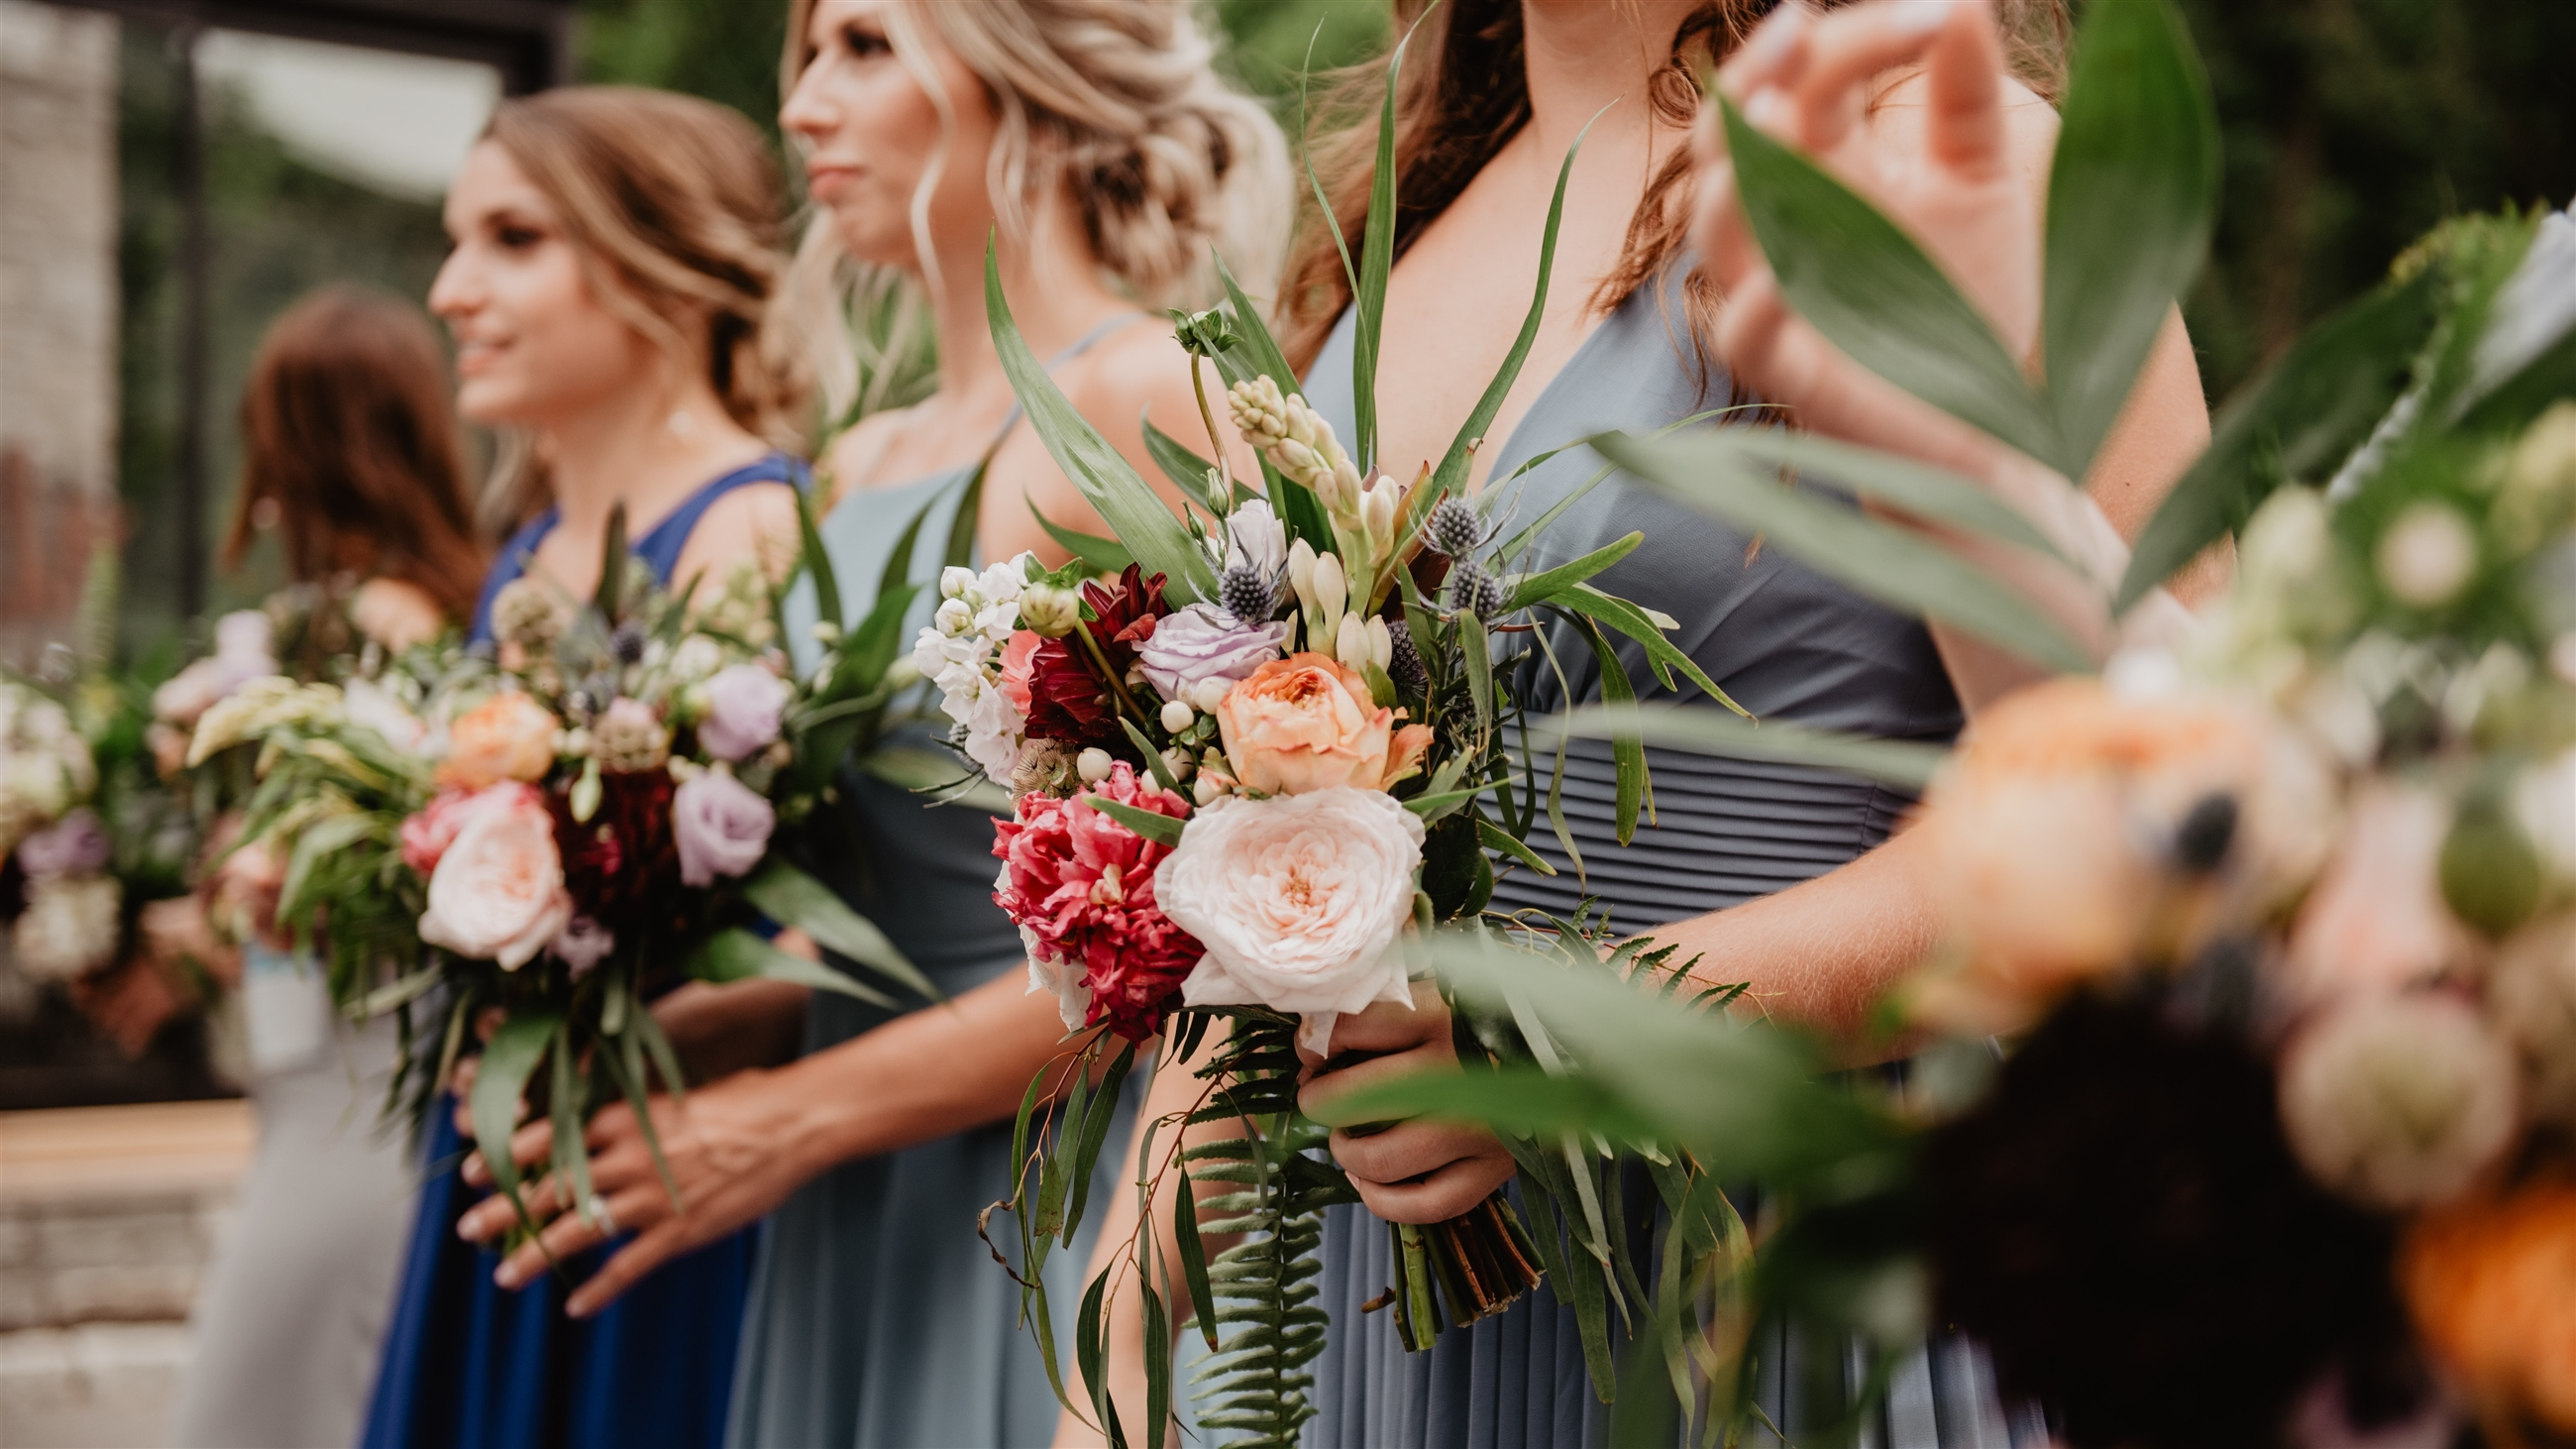 The Bride is Panicking: How to Be a Supportive Bridesmaid During COVID-19